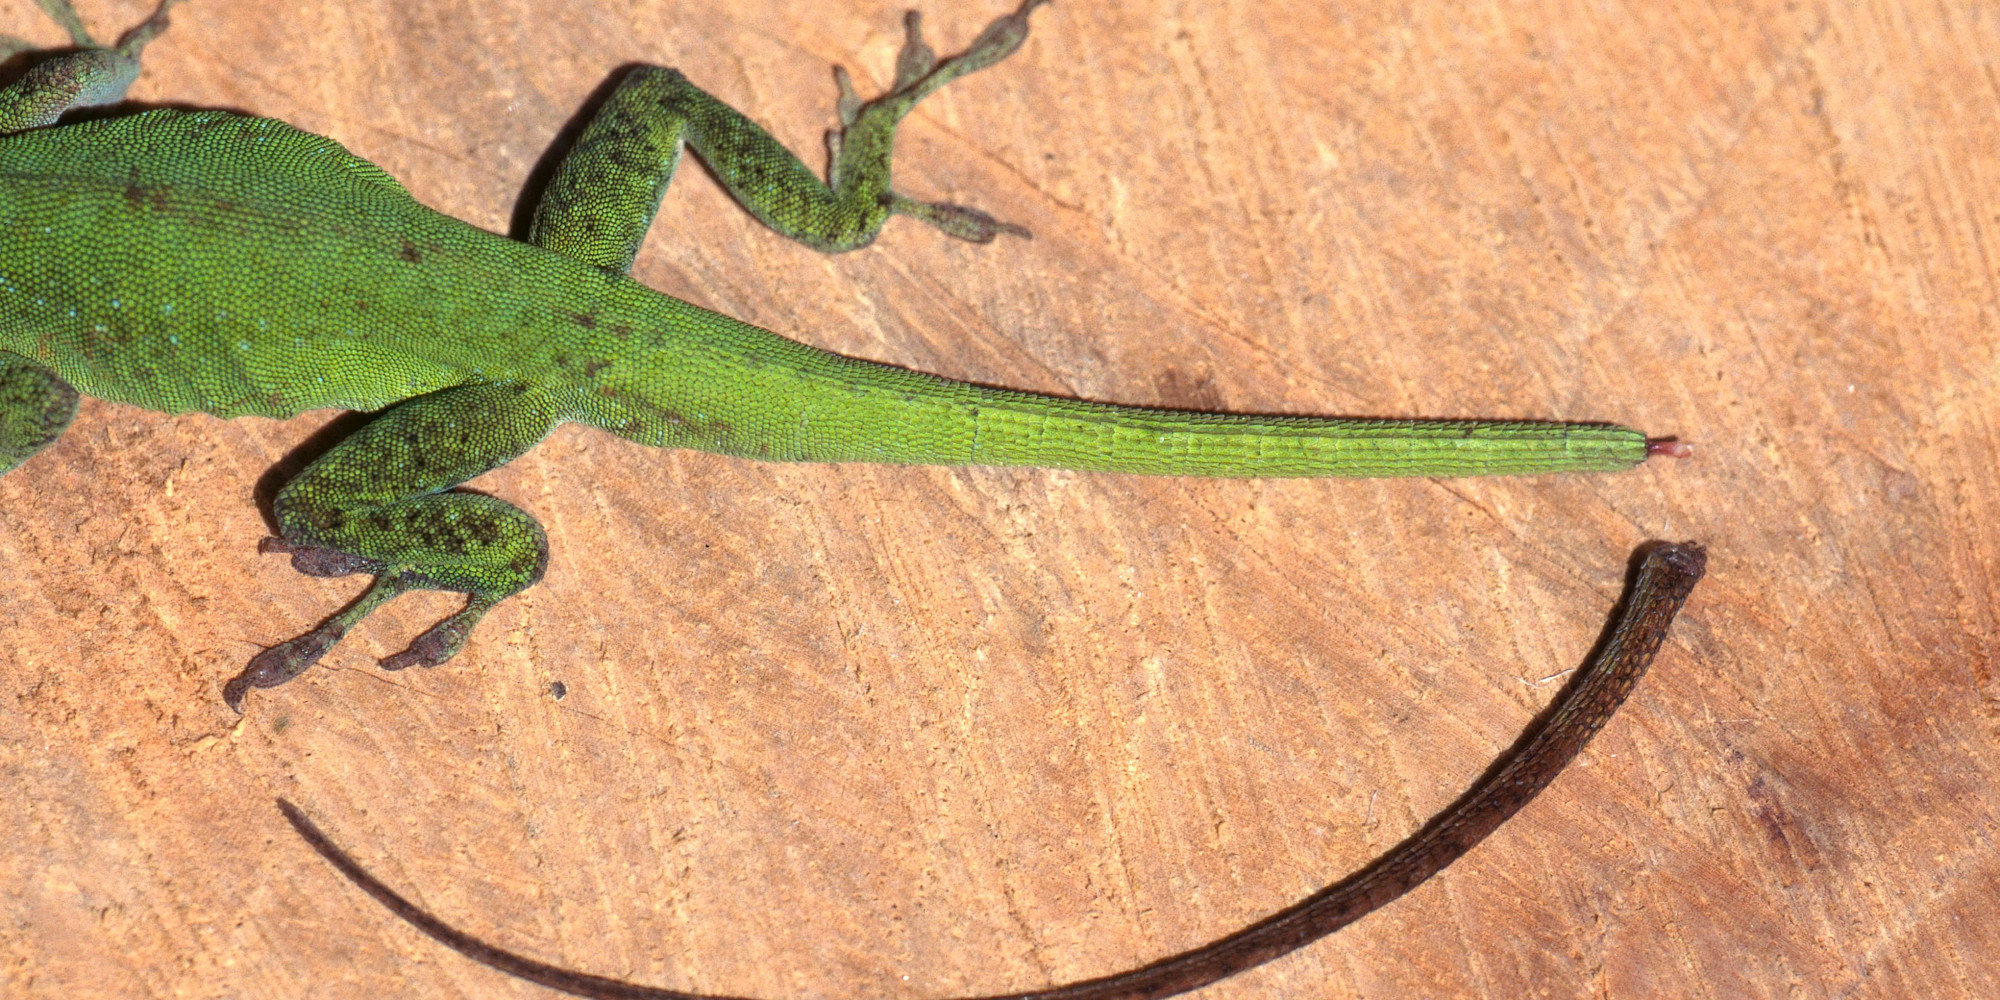 scientists have figured out how lizards regrow their tails and